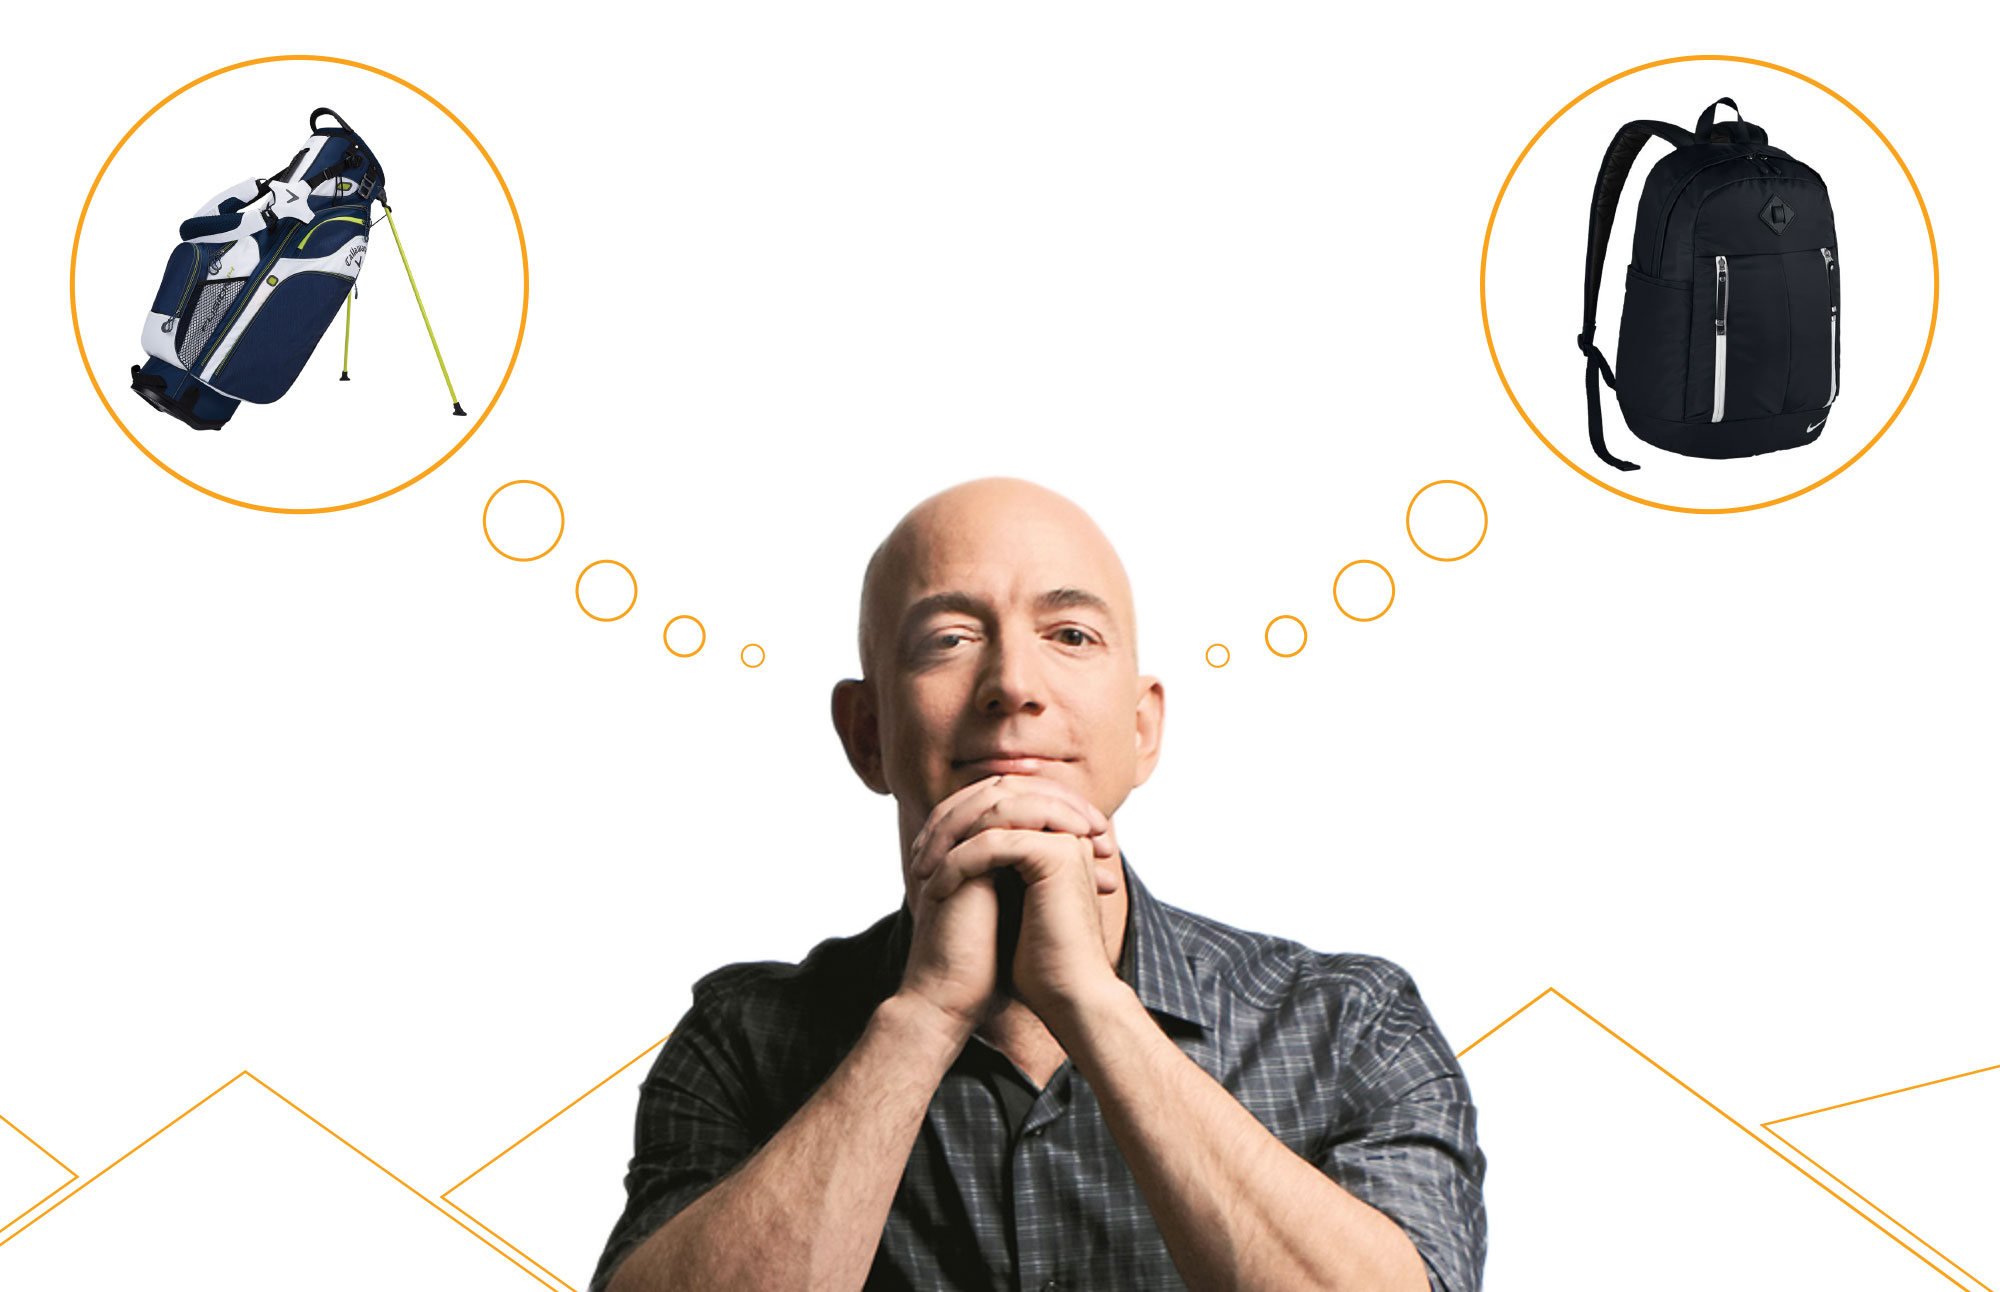 Jeff Bezos Product Choices